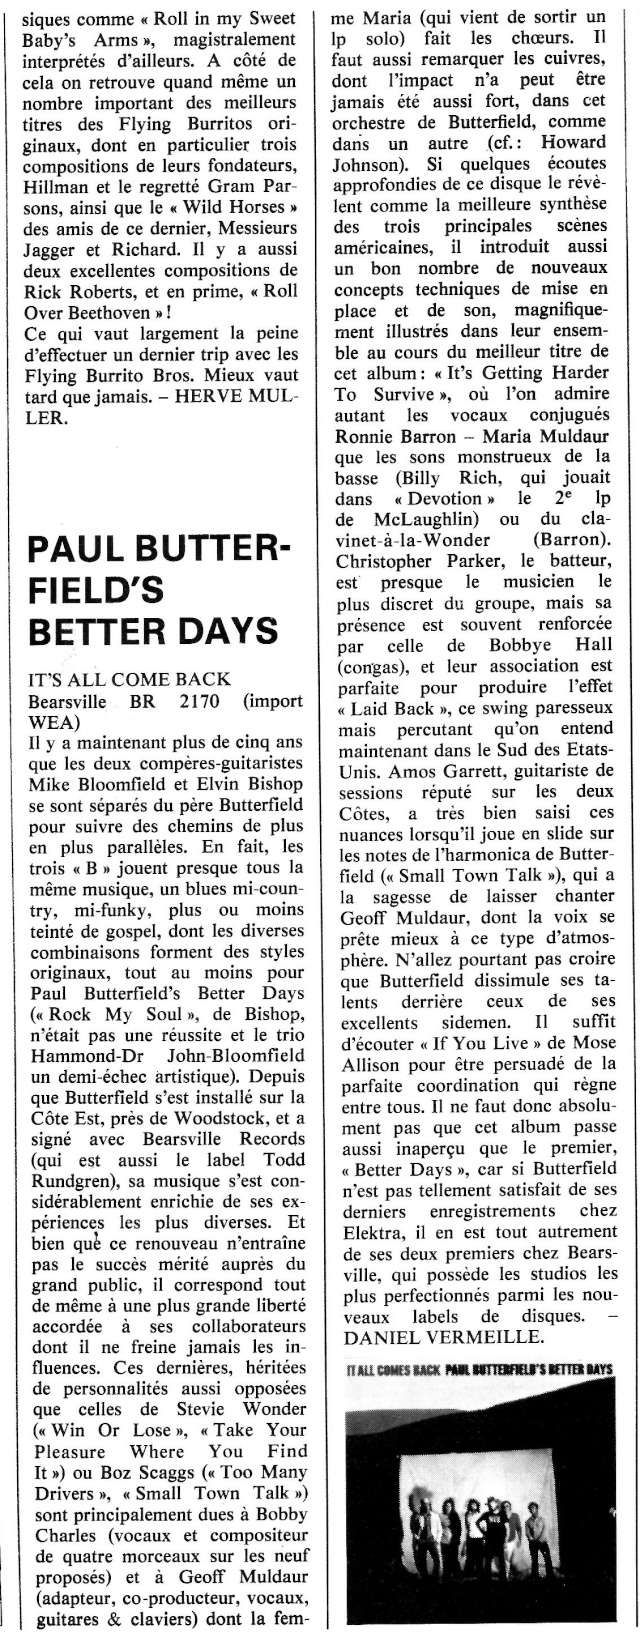 Paul Butterfield's Better Days: It's all come back R85-7410